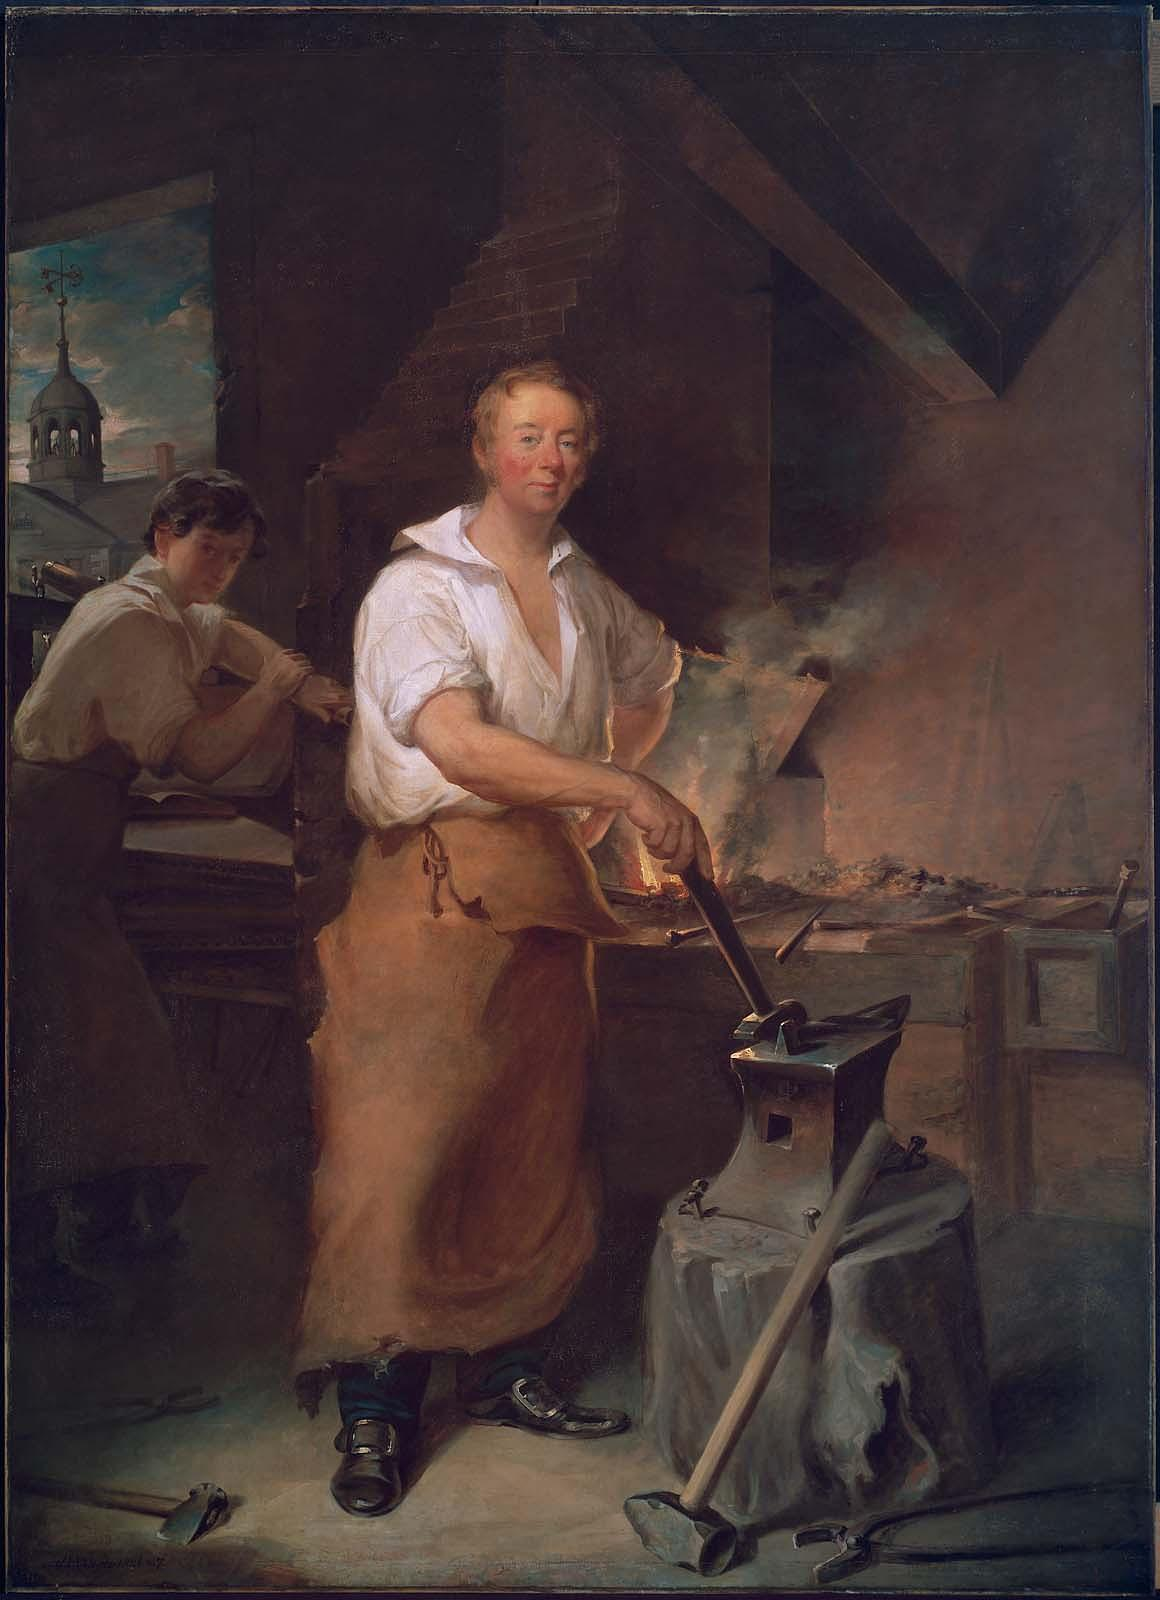 Pat Lyon at the Forge (ca. 1826-1827). Courtesy of the Museum of Fine Arts: Boston, 1975.806.